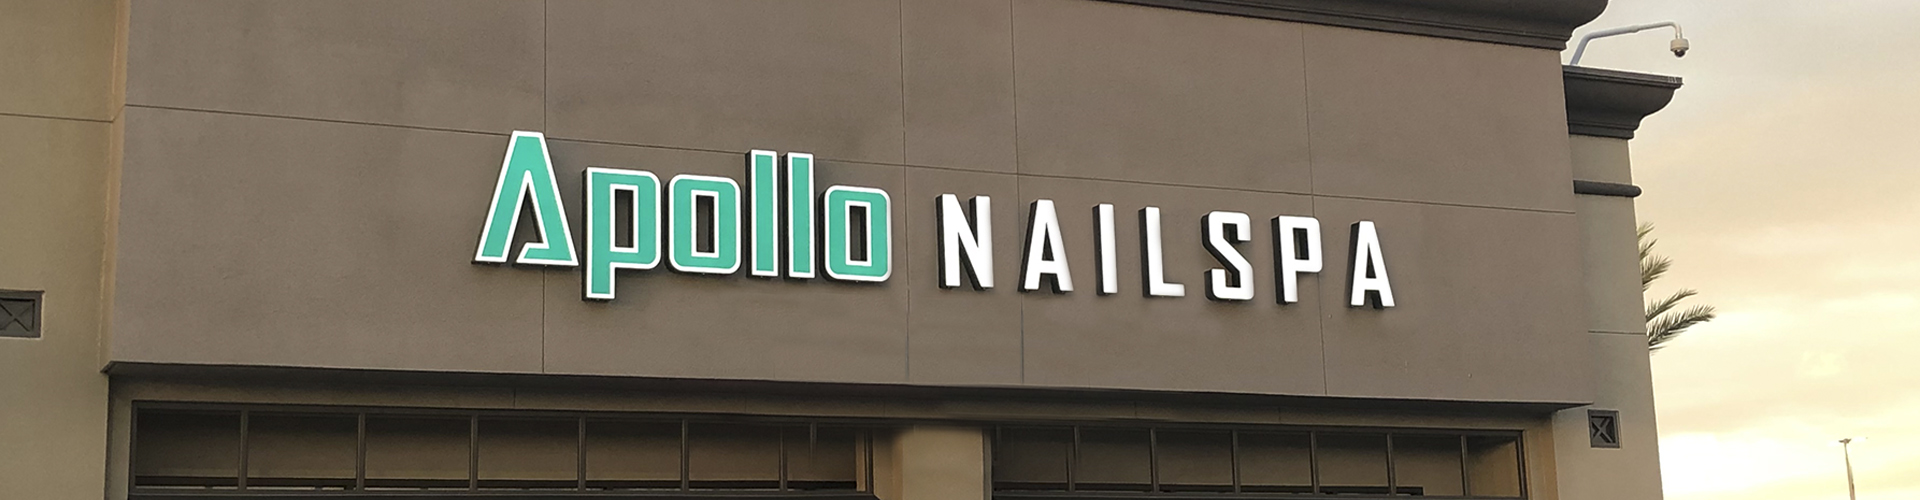 Apollo Nail Spa